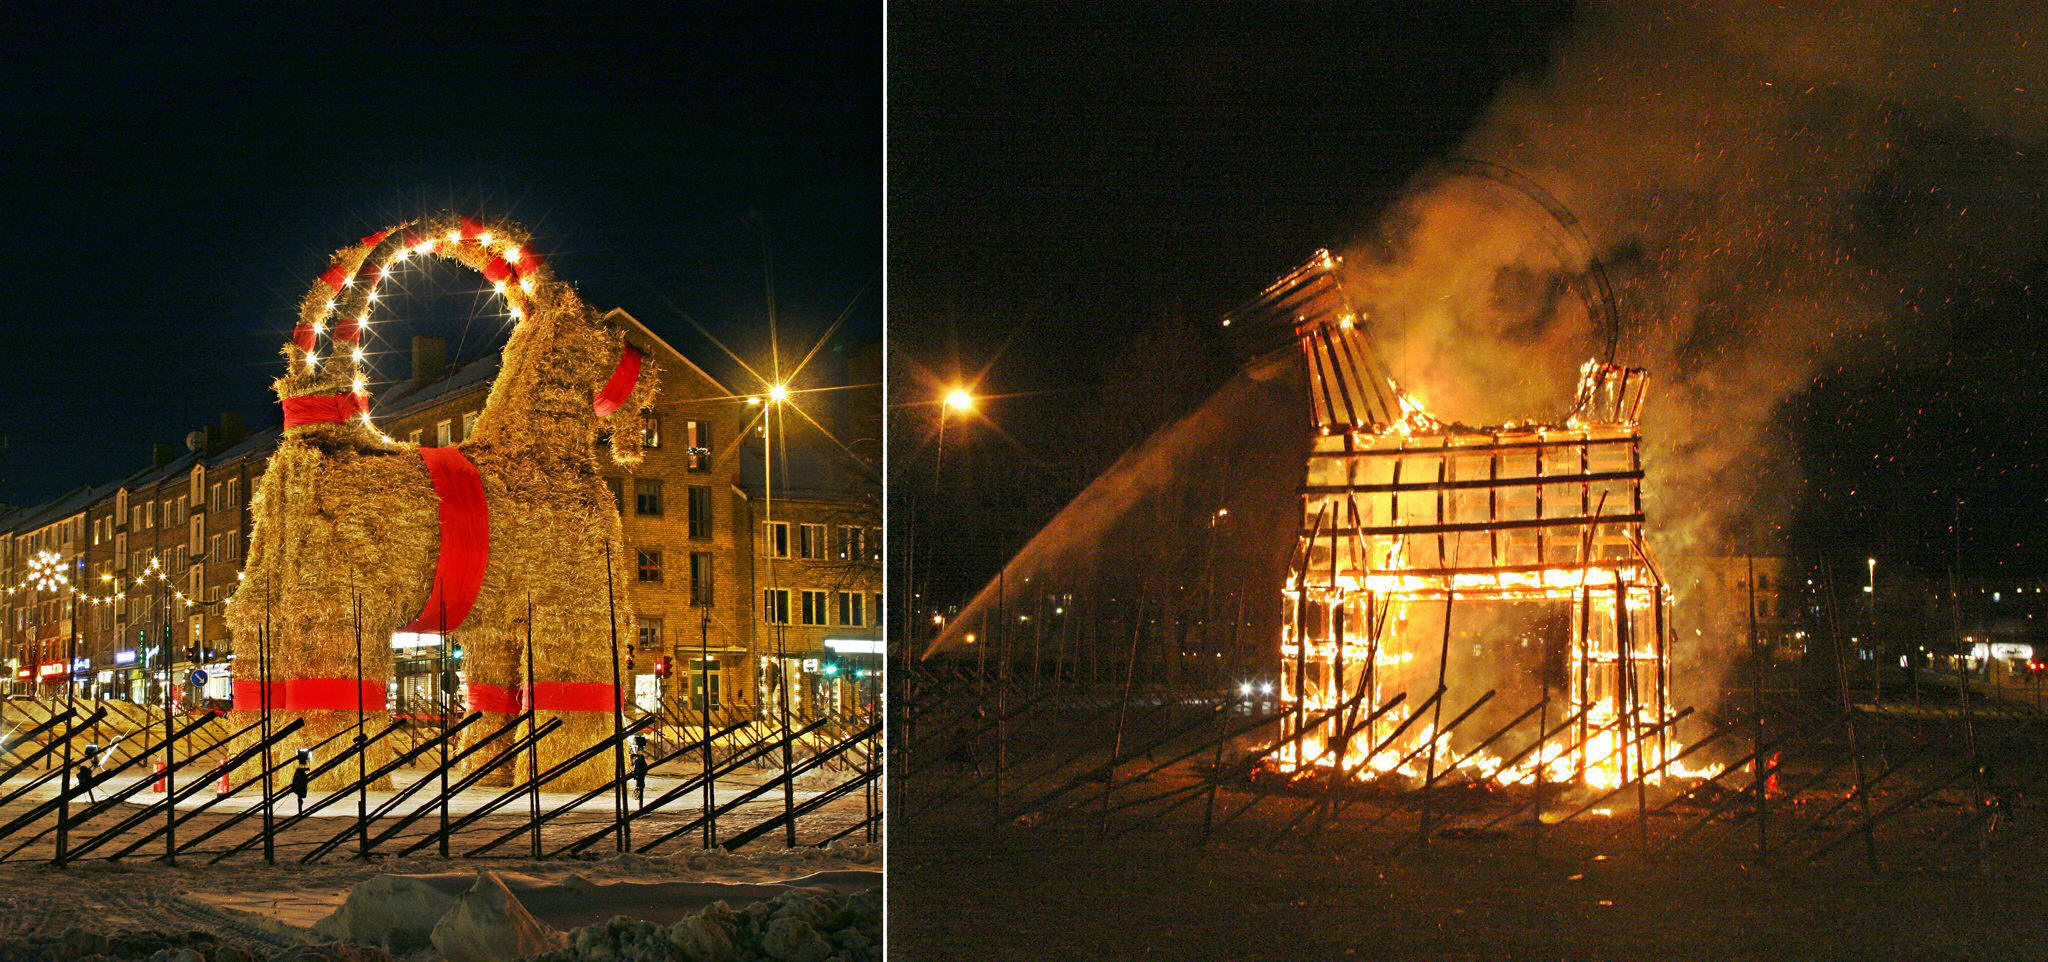 the Christmas goat before and after it got torched in Sweden